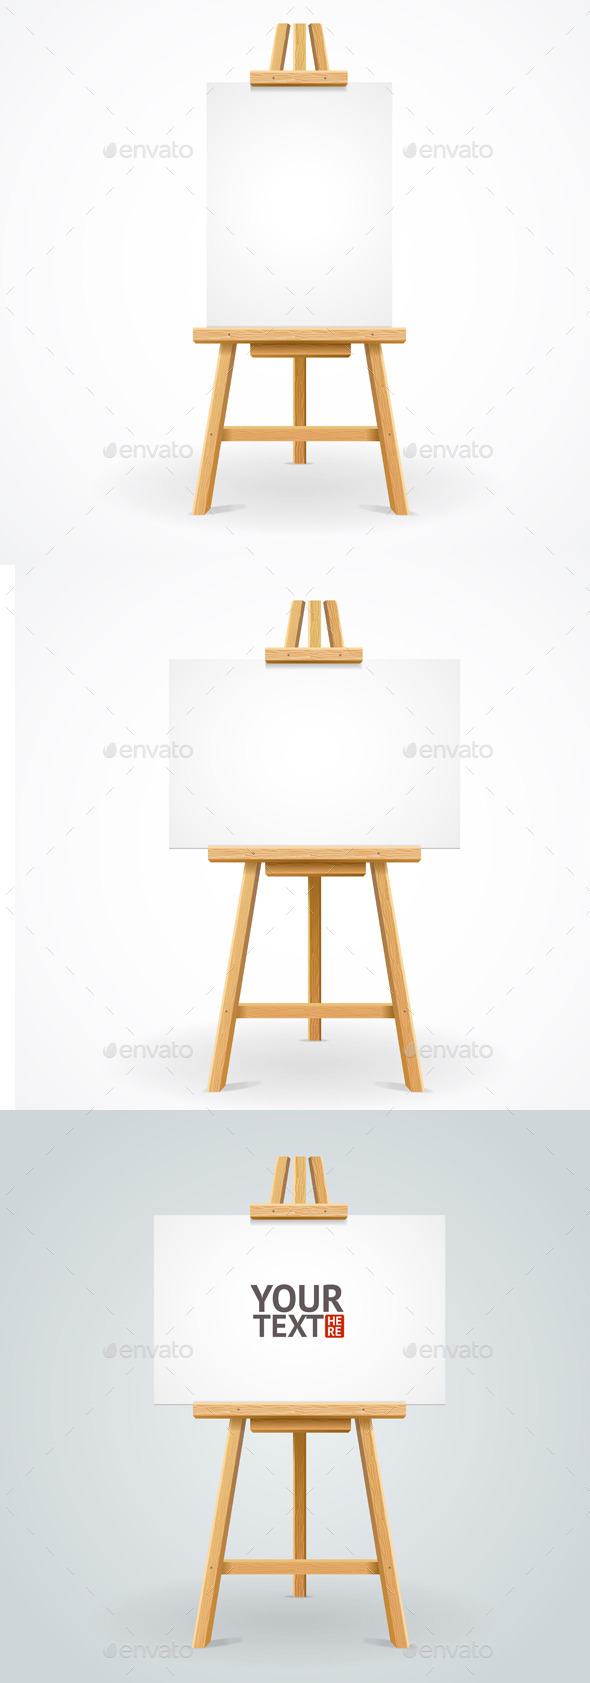 Wooden Easel Set - Buildings Objects